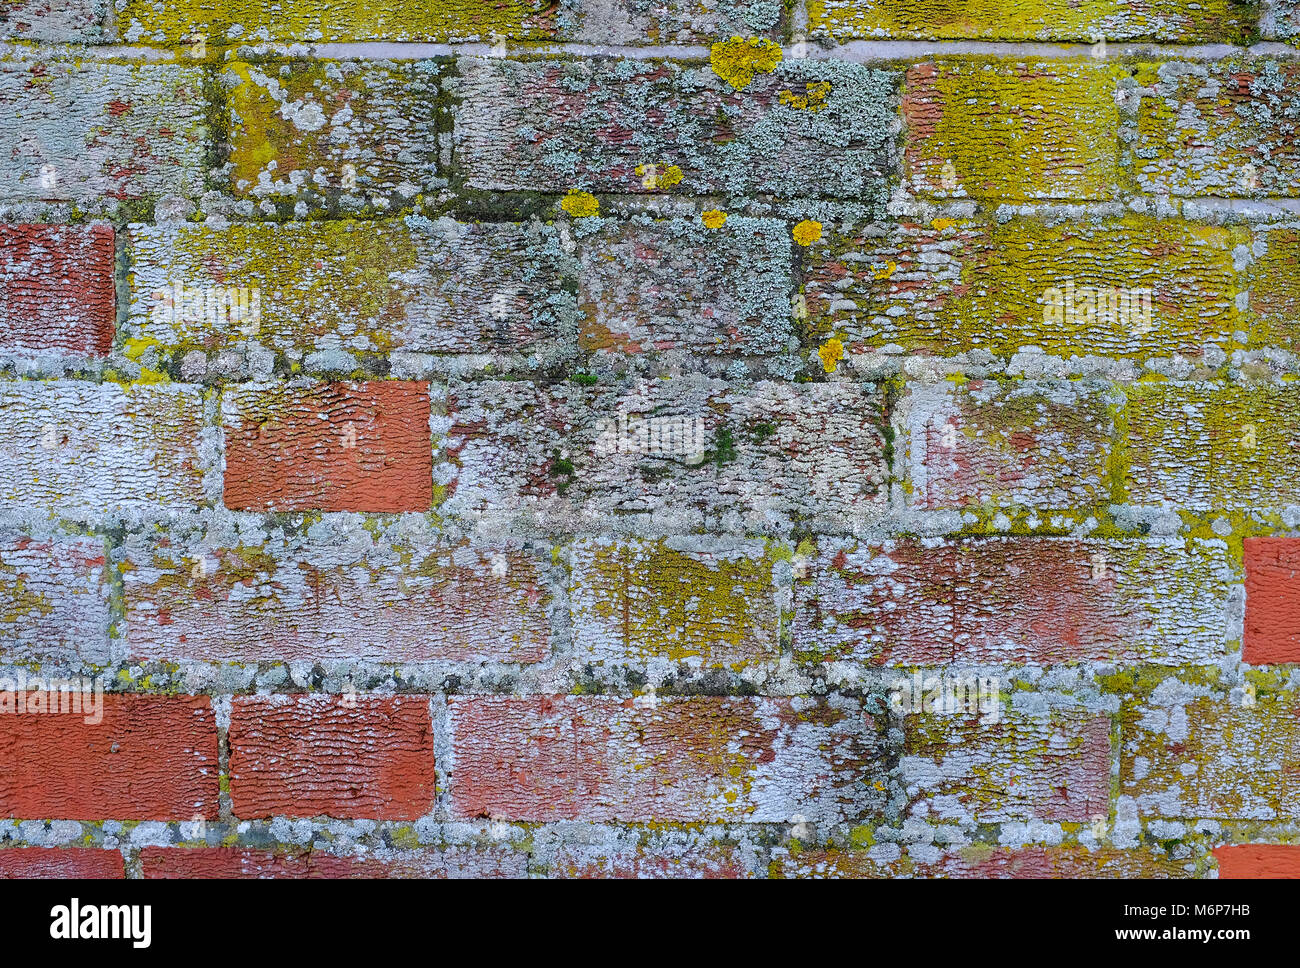 extremely damp exterior wall, norfolk, england - Stock Image